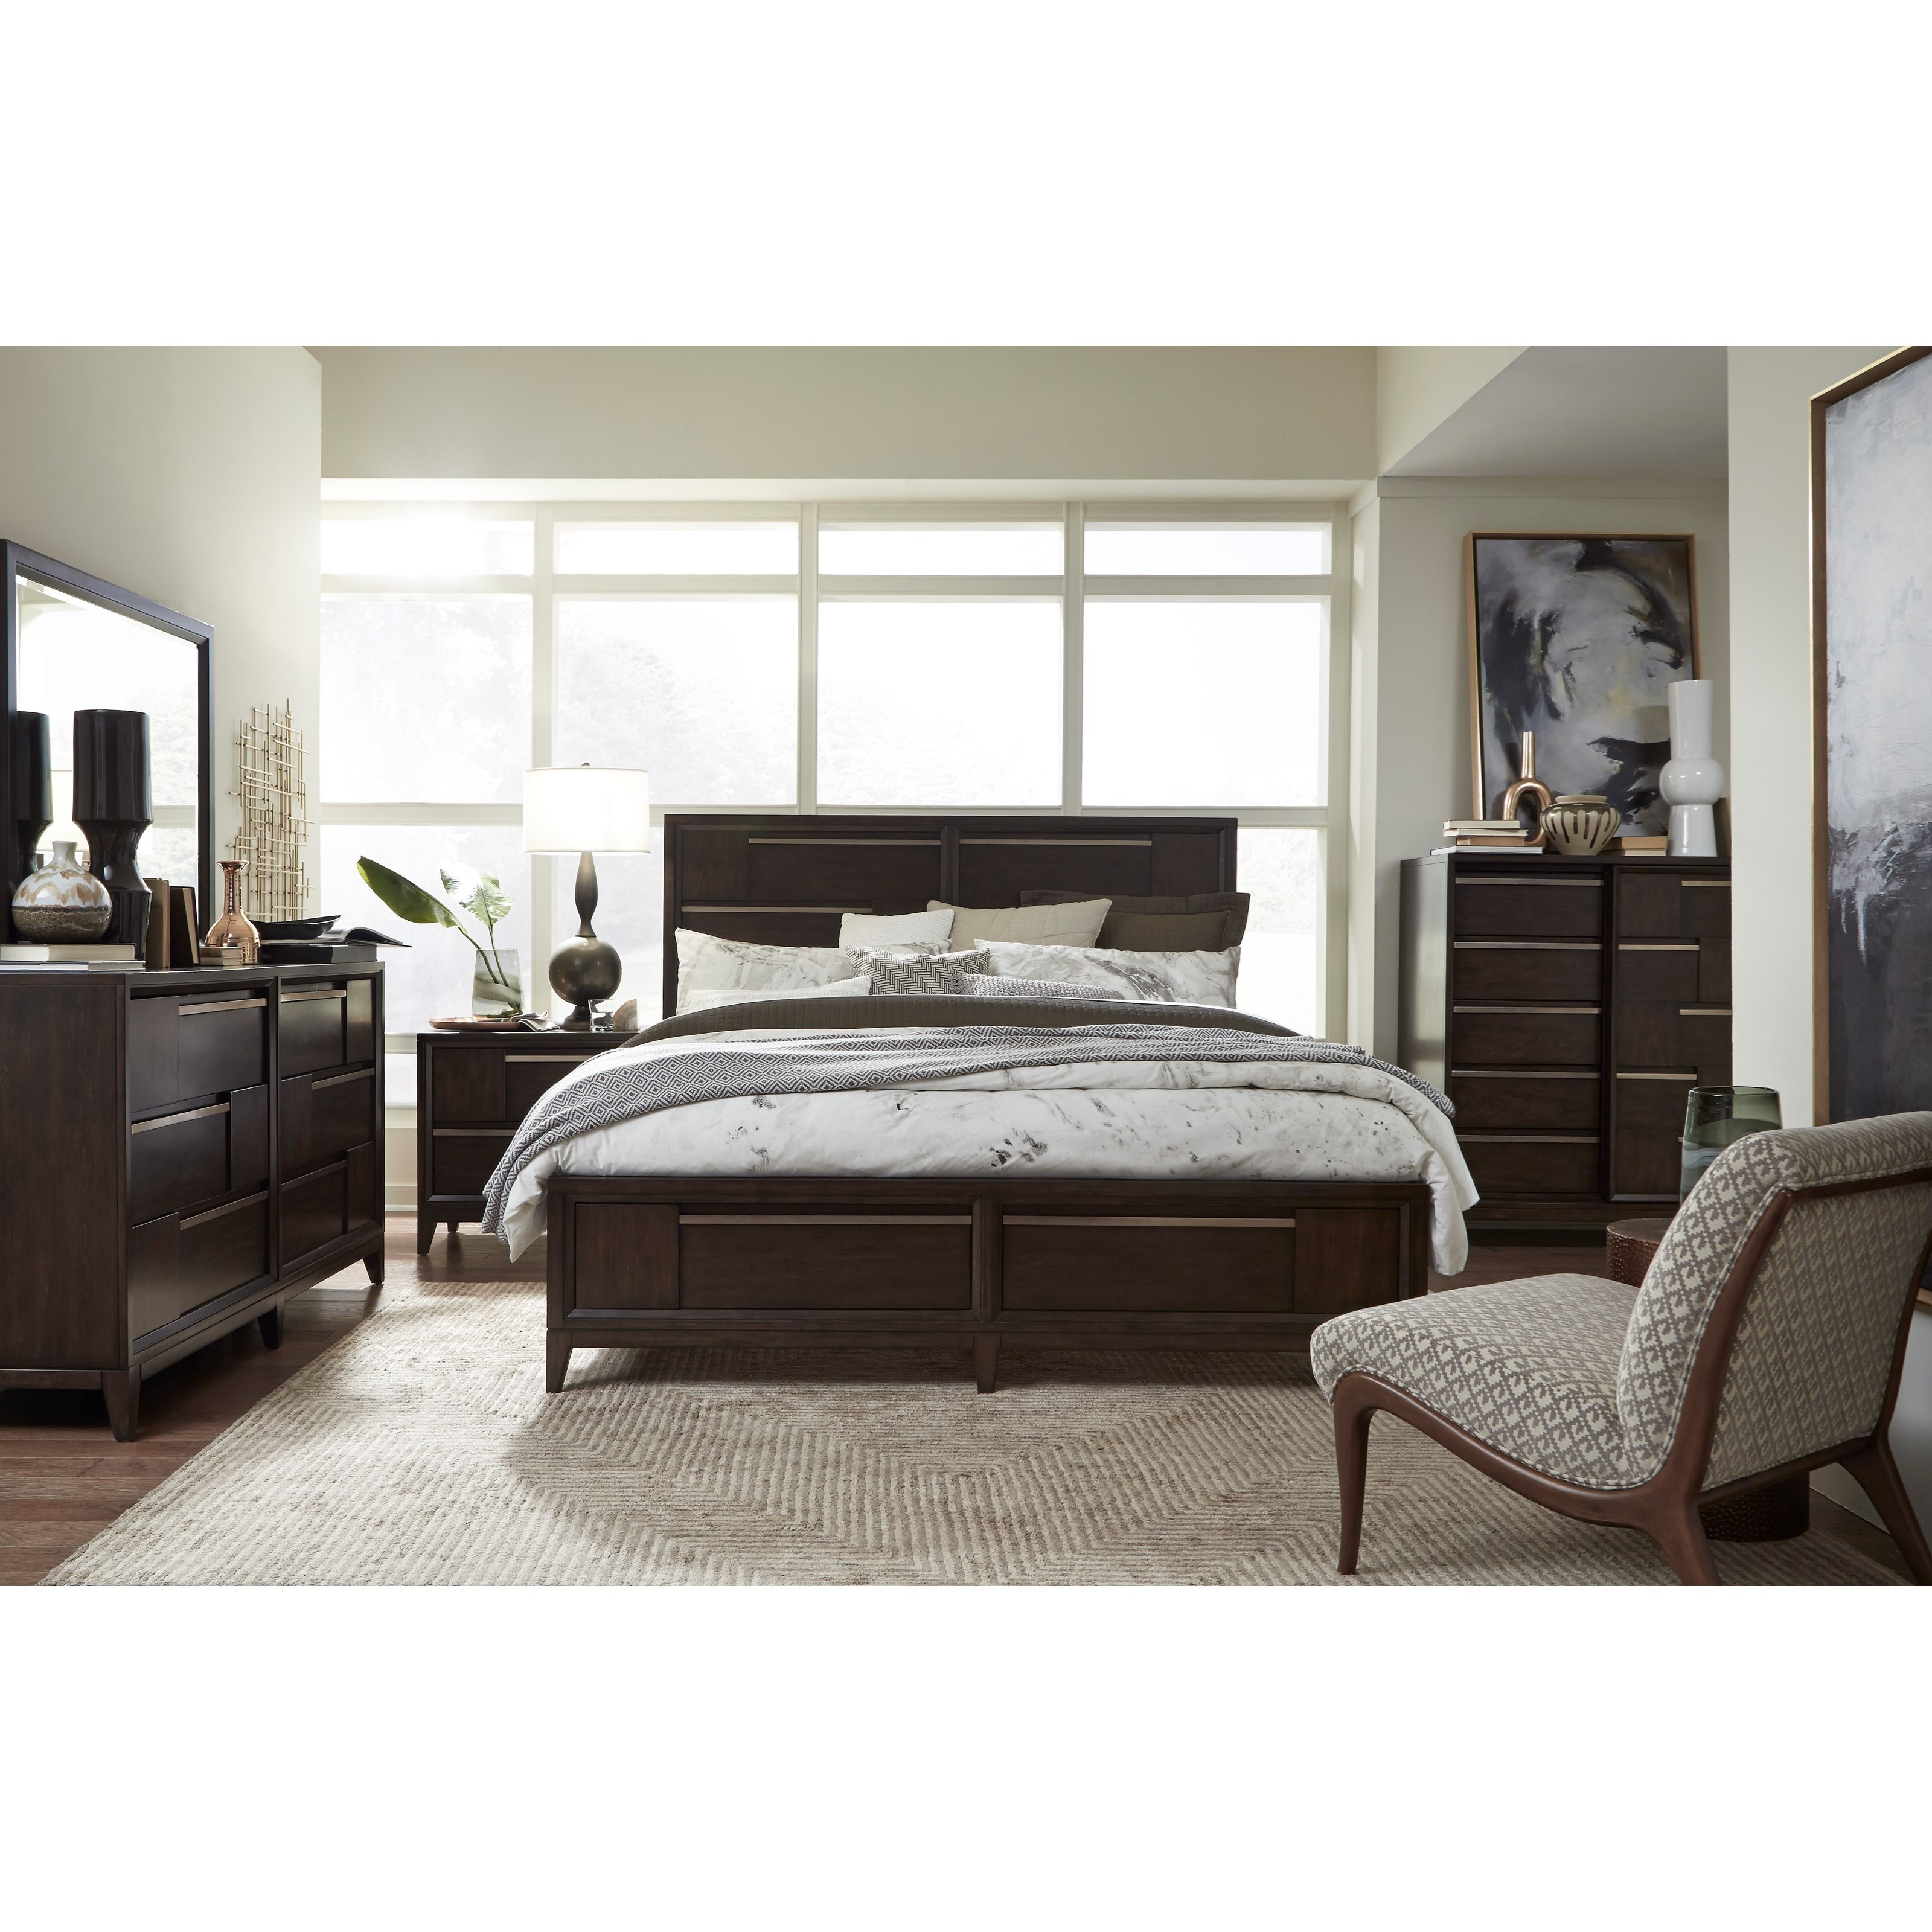 Modern Geometry Queen Bedroom Group by Magnussen Home at Upper Room Home Furnishings